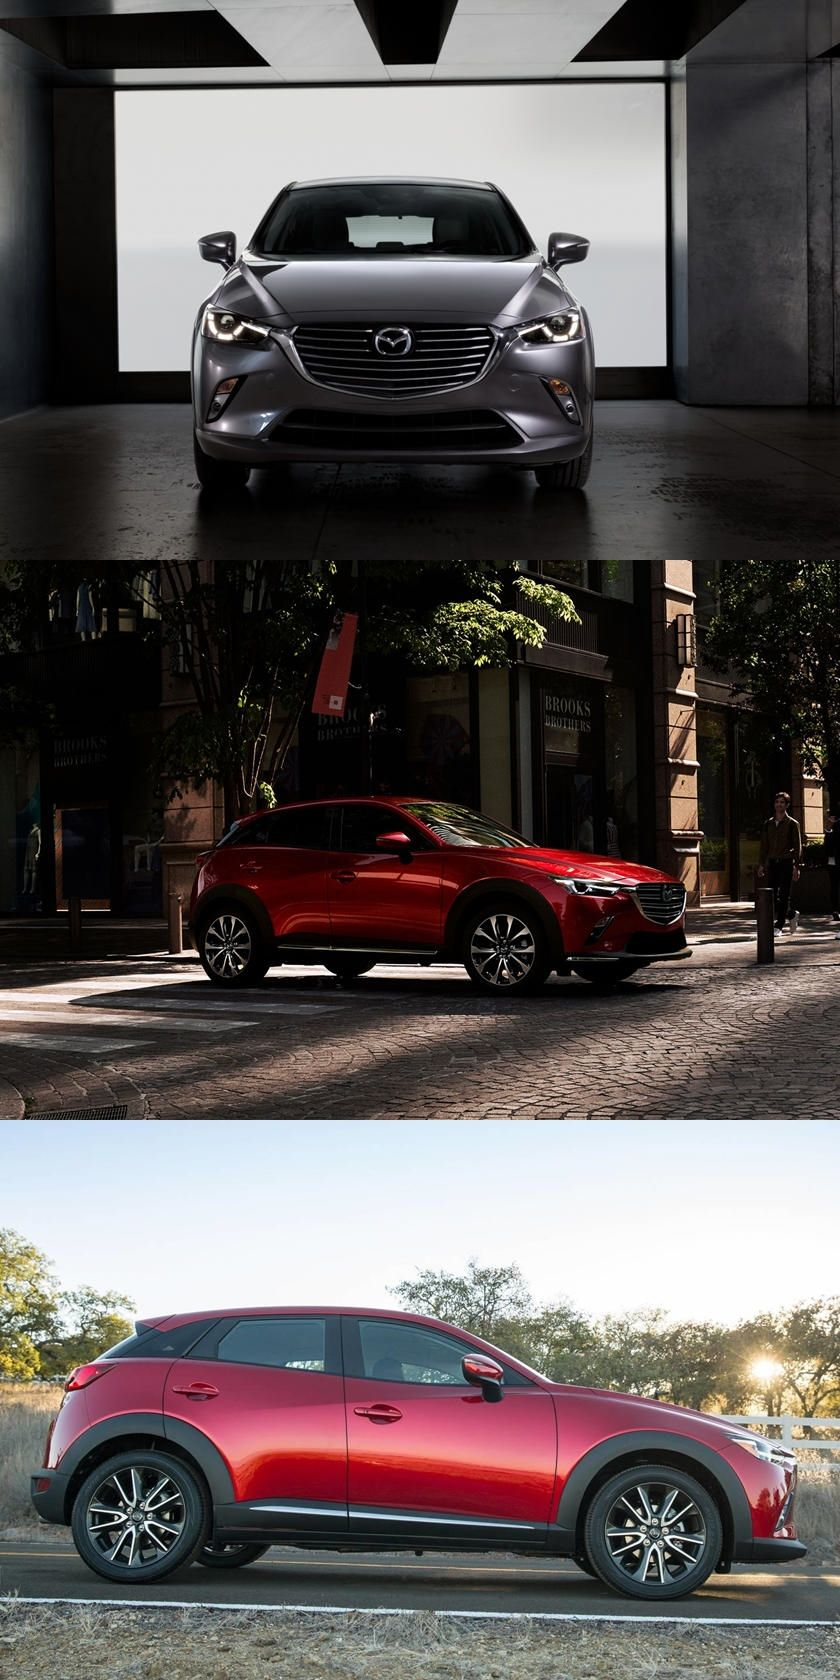 2020 Mazda Cx 3 Loses Trim Levels But Gains Technology But Will